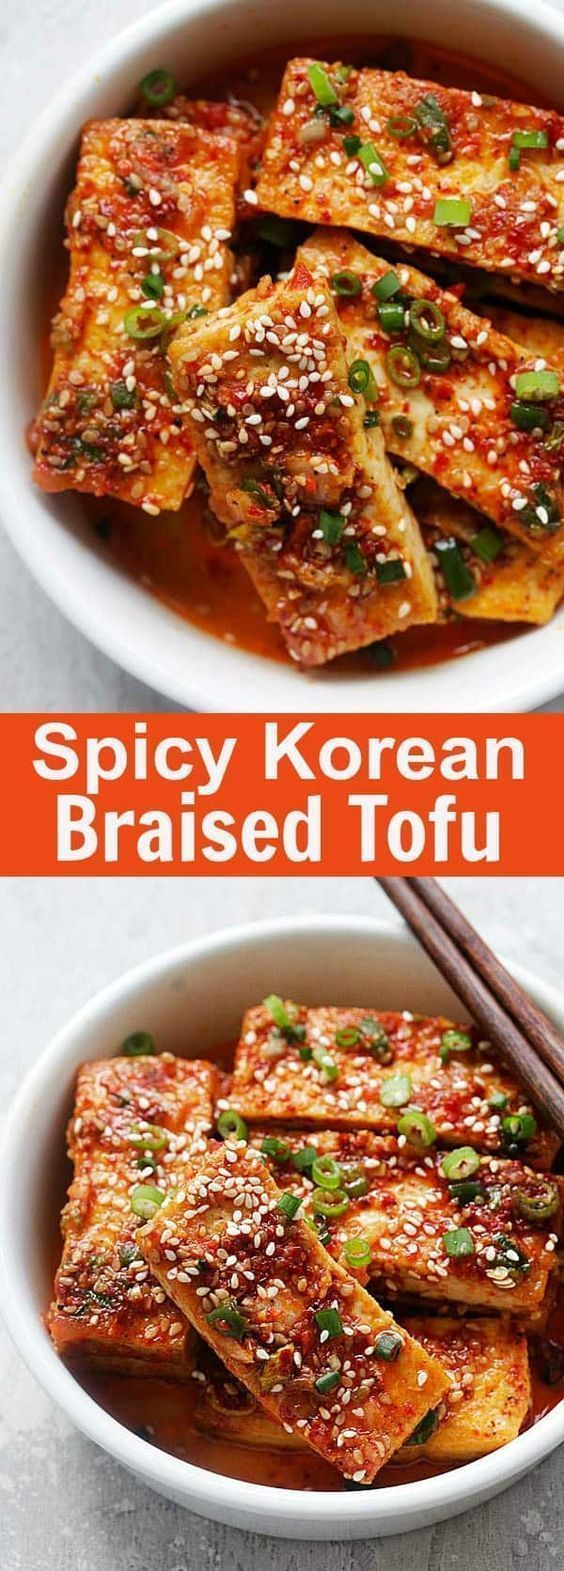 Spicy Korean Tofu - quick and easy Korean braised tofu with chili powder, garlic, soy sauce, sugar a